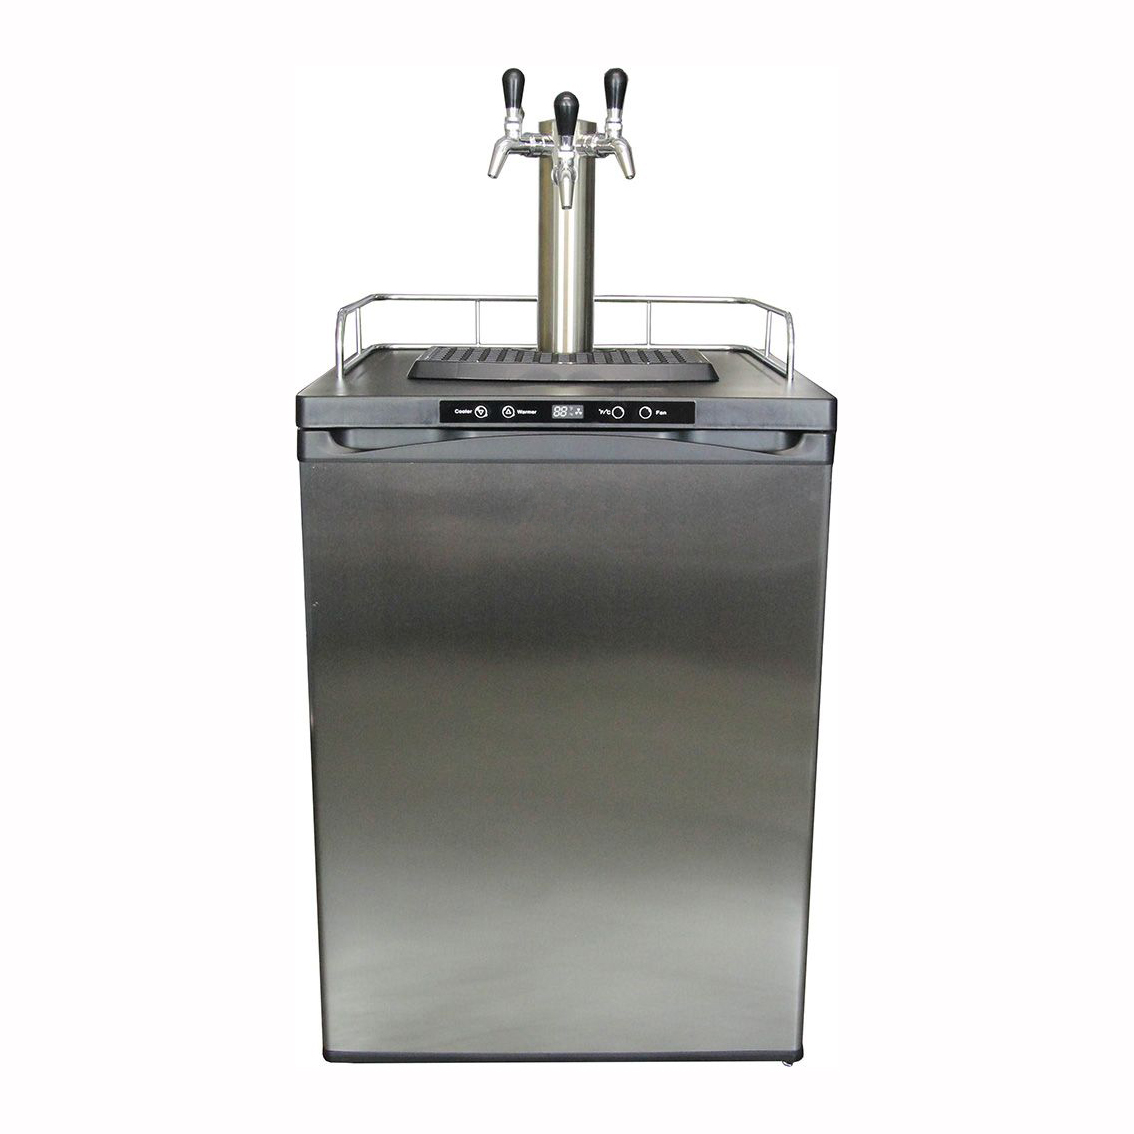 Kegmaster Series 4 - Dimensions: (W*D*H) 600 x 610 x 840 (mm)(excluding castor wheels and the height of guard rail, drip tray or font)holding capacity: 3 x 19.5 litre kegs or 1 x 50 litre keg$450 ex gst for complete setup with standard font tower pictured or/$5 ex gst per week rental billed monthly